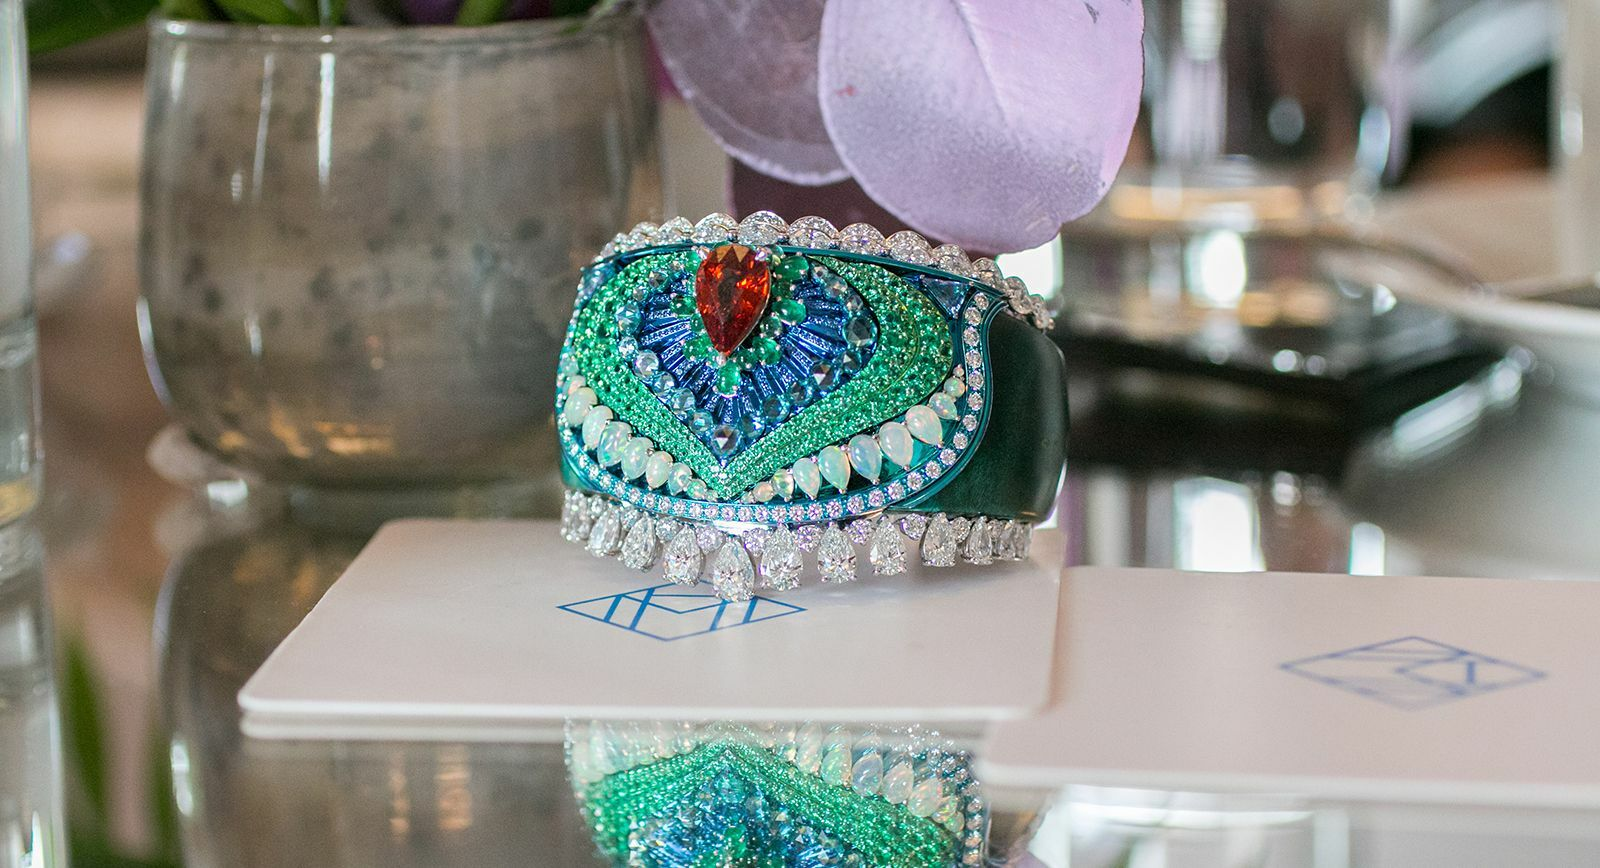 Chopard Red Carpet 2019 collection cuff